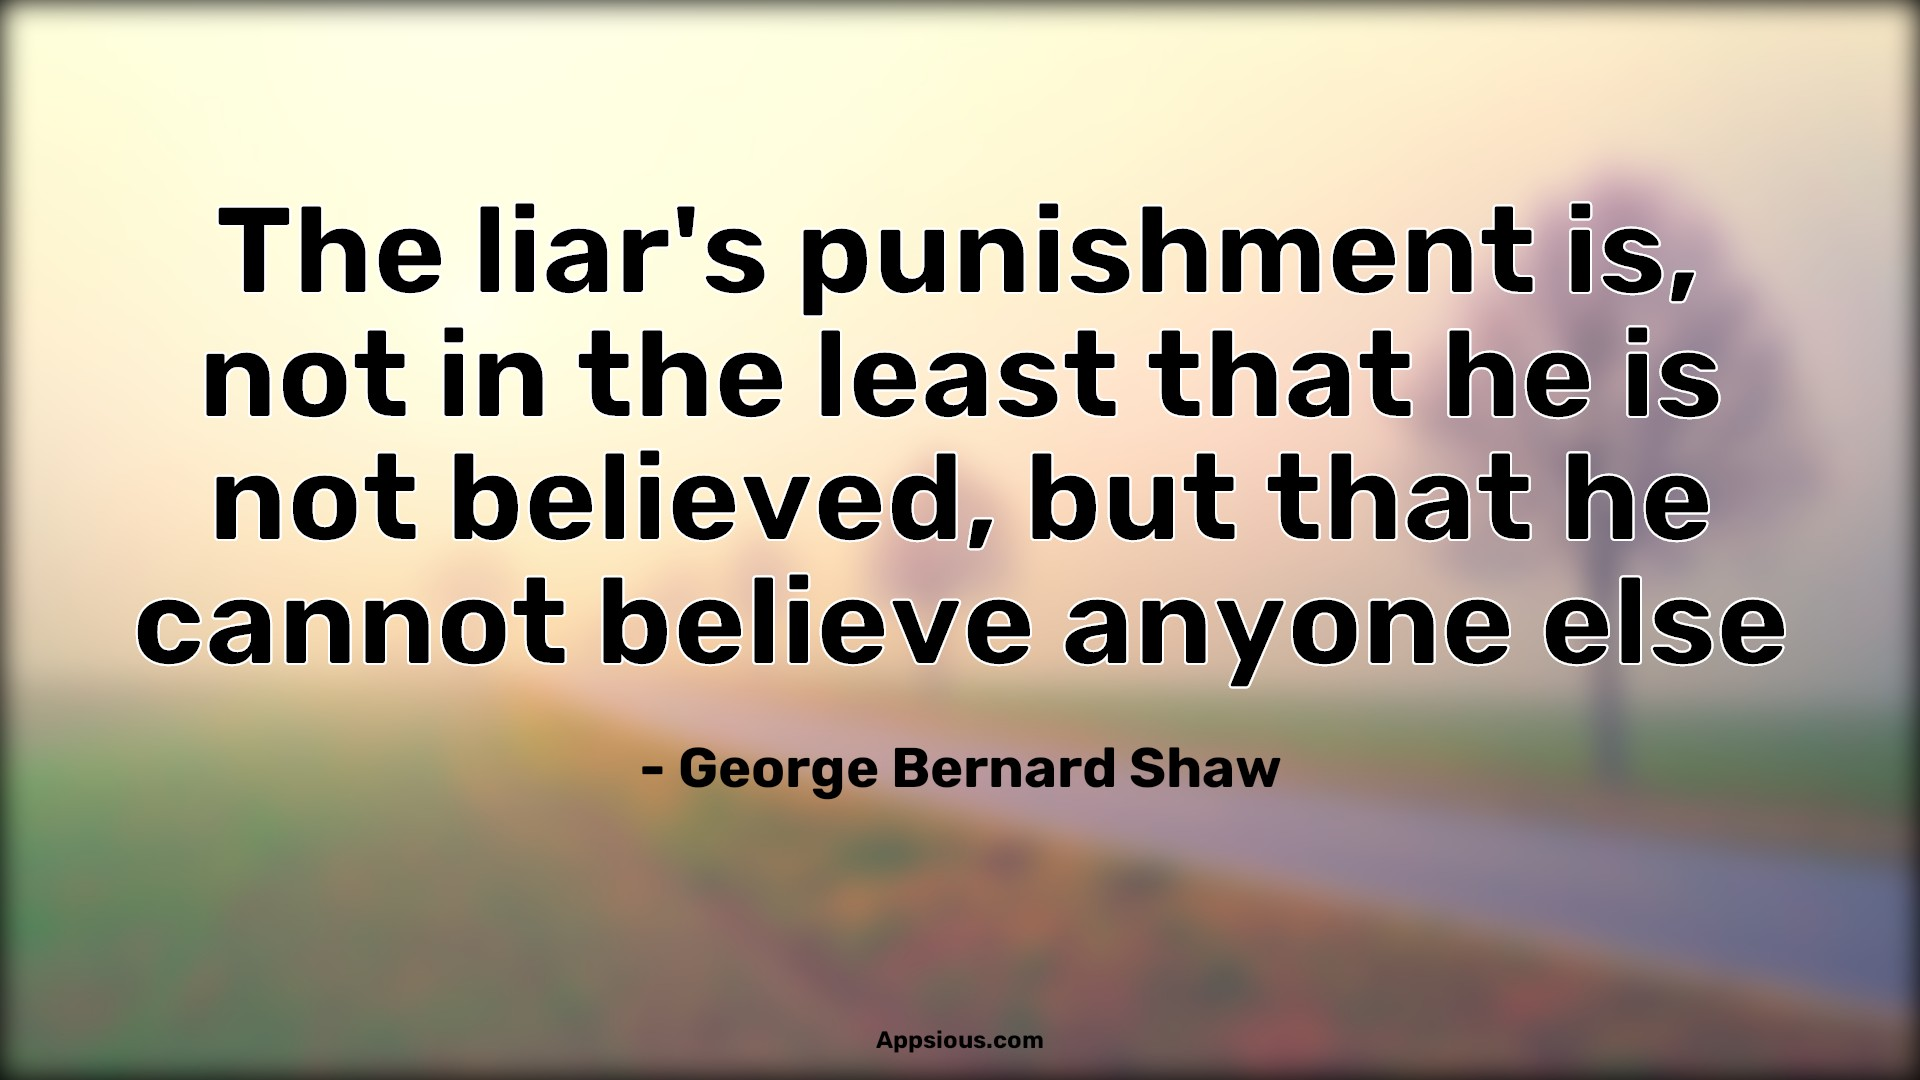 The liar's punishment is, not in the least that he is not believed, but that he cannot believe anyone else